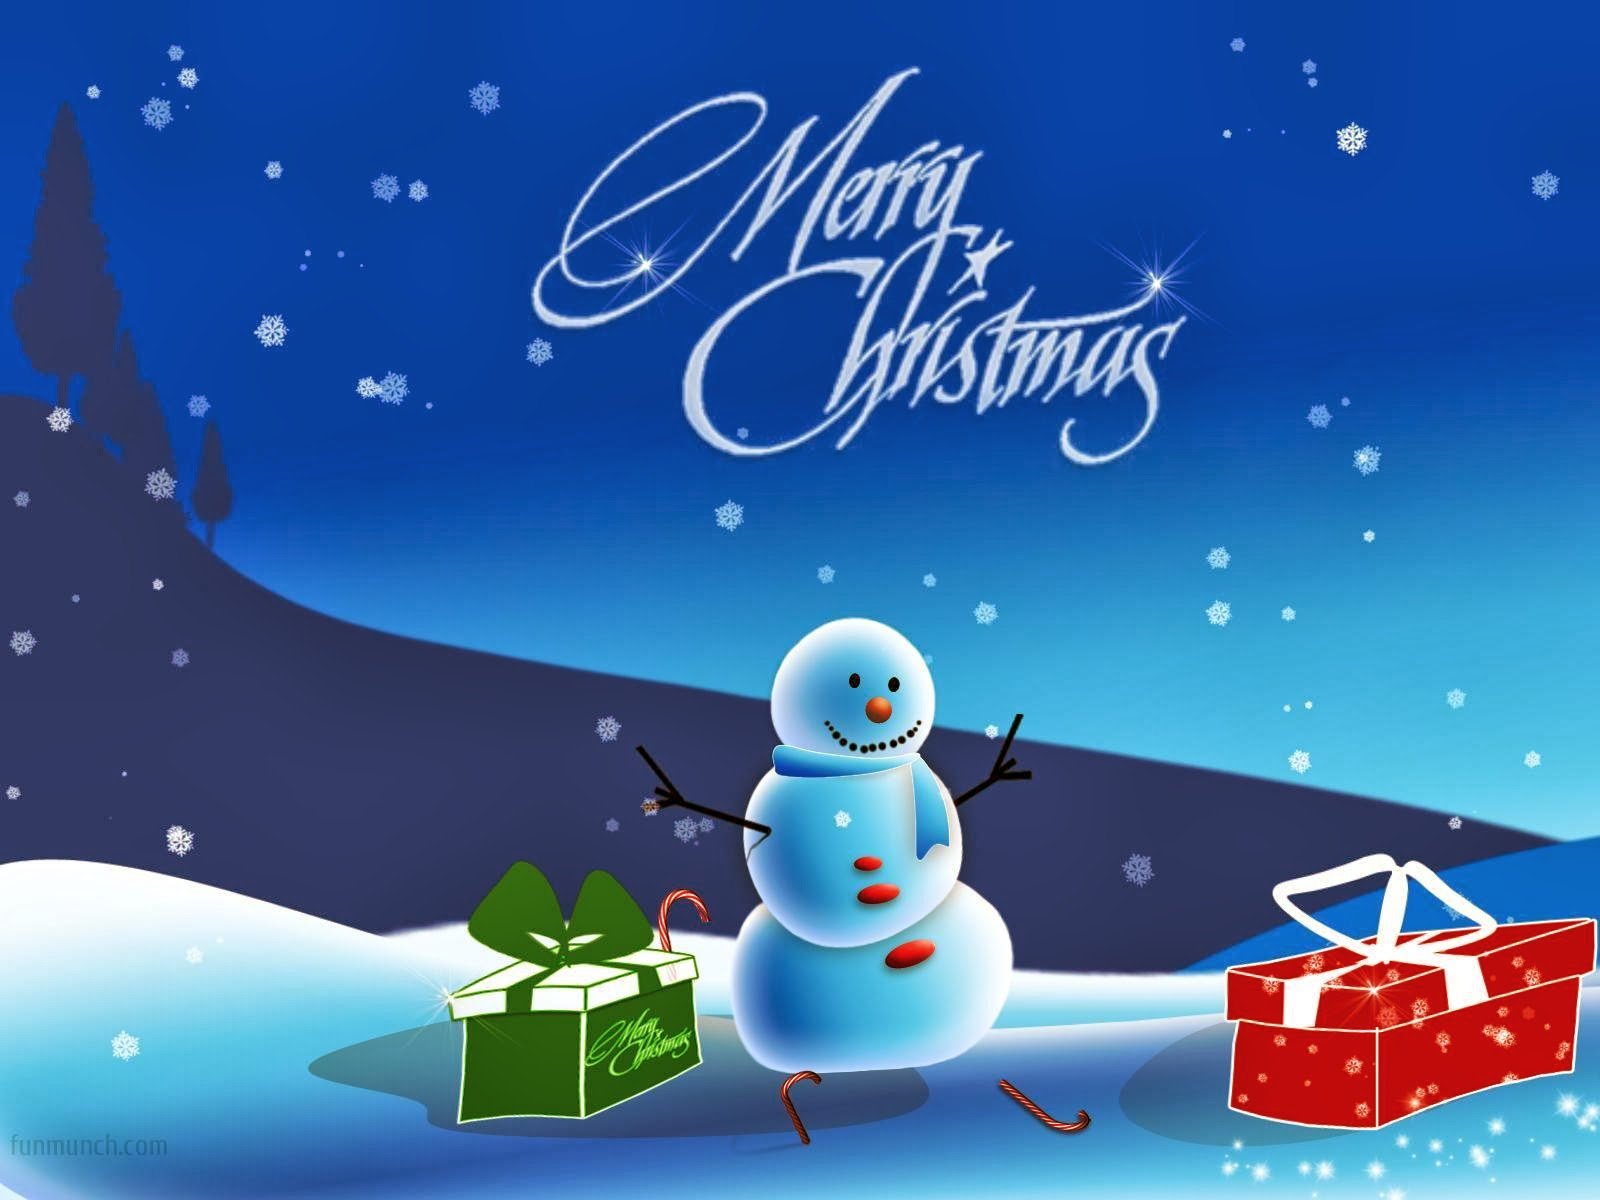 Merry xmas 2015 and new year 2016 greeting cards animation for whatsapp we hope that given information about merry xmas 2015 and new year 2015 greeting cards animation for whatsapp is very useful to you on this christmas kristyandbryce Gallery